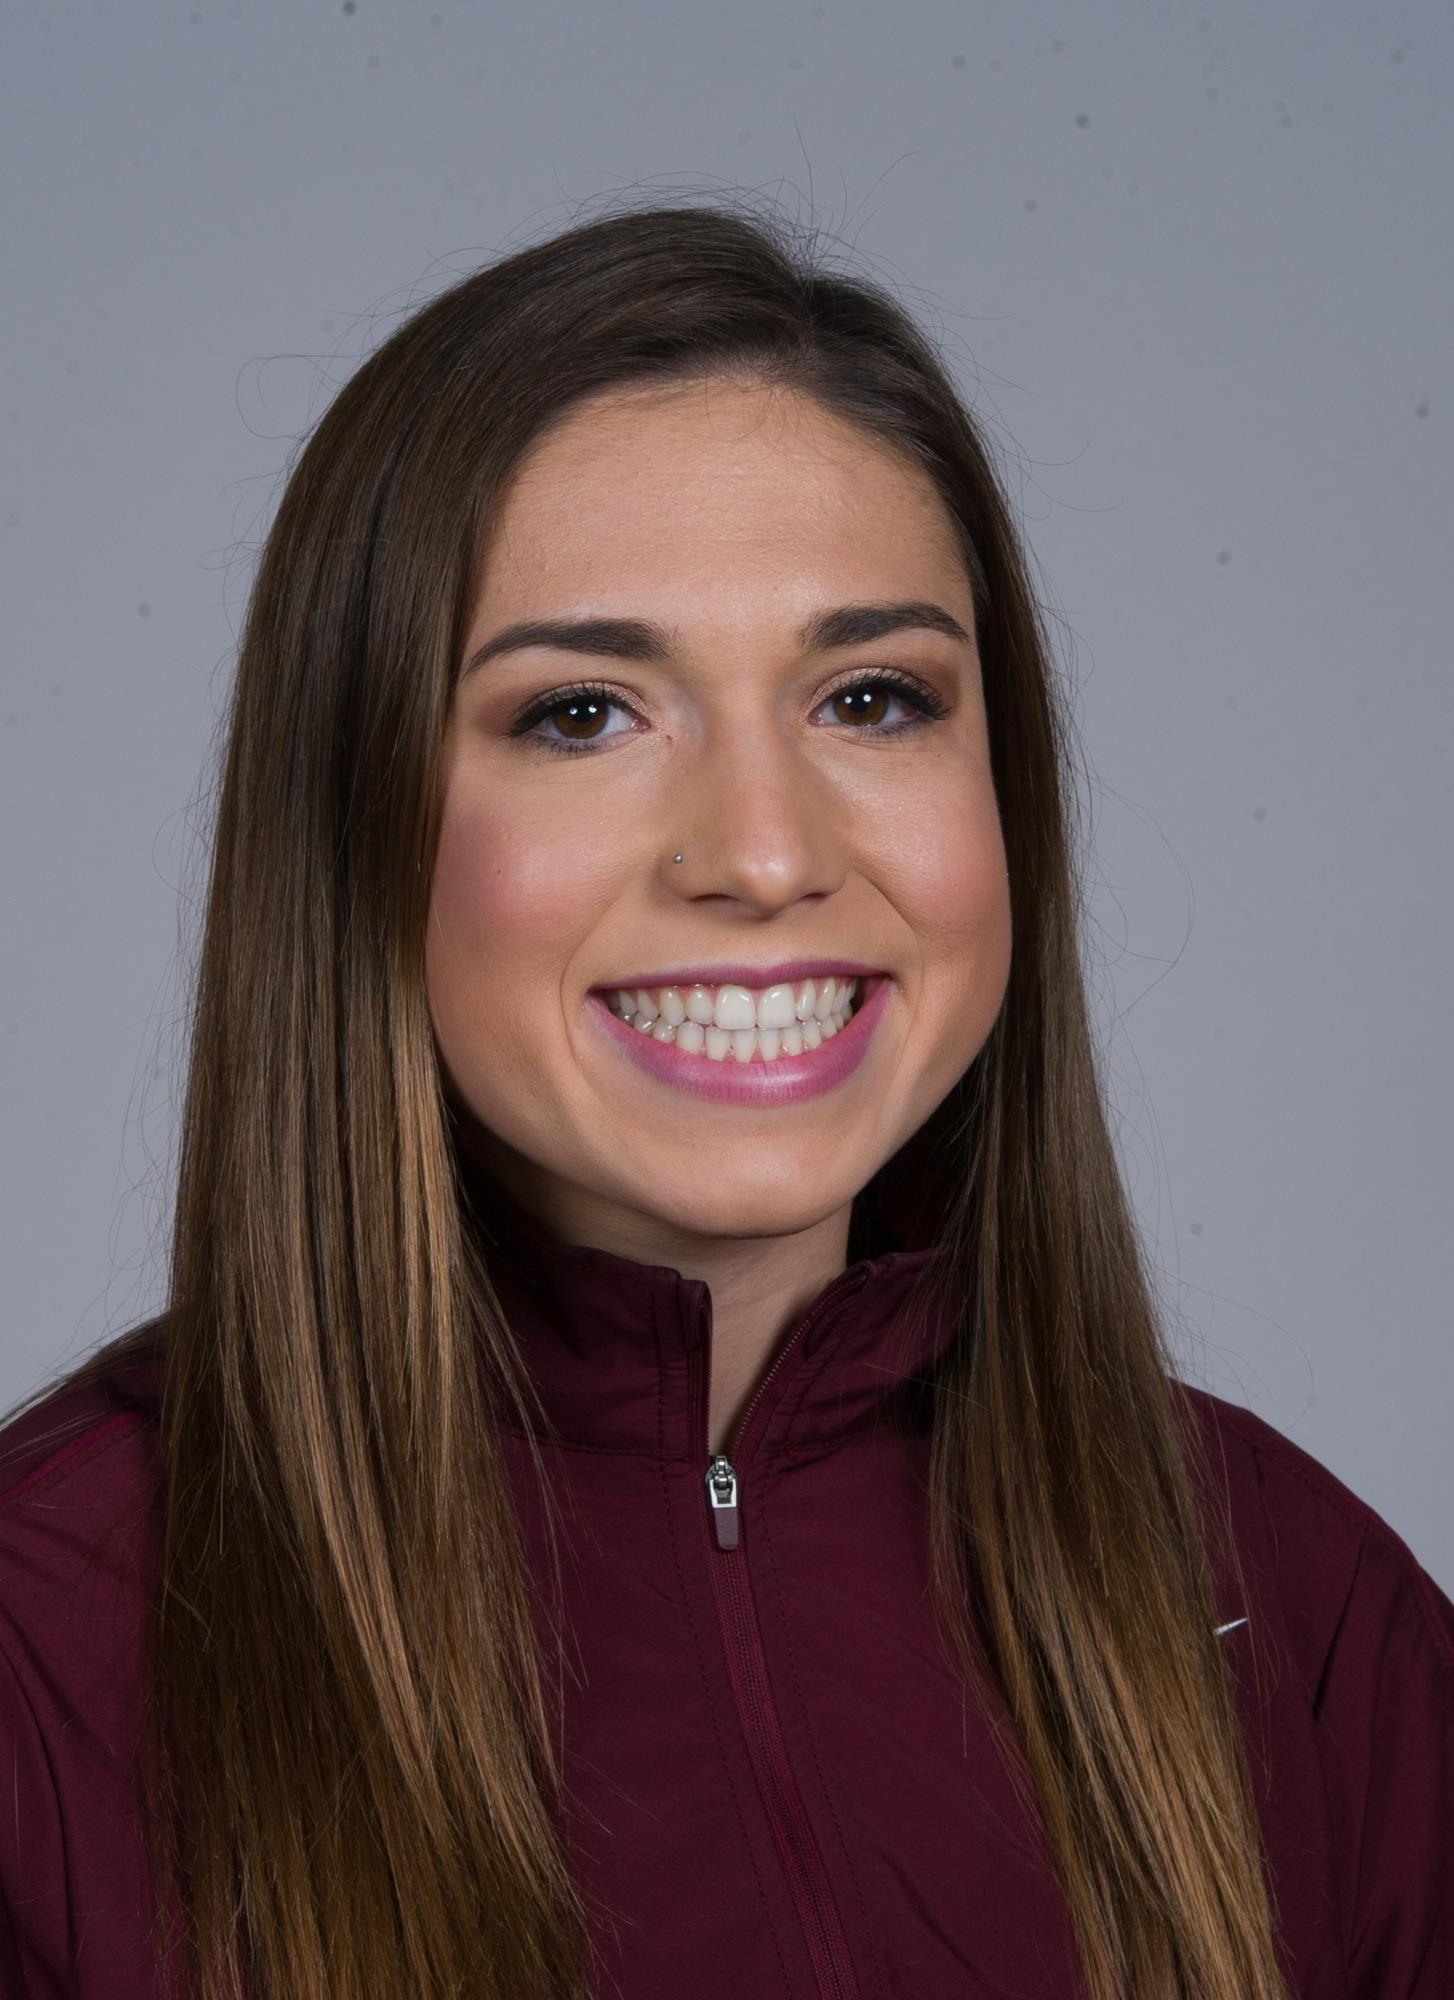 ca7e0bd541e5 2017-18 Track and Field Roster - Texas A M Athletics - Home of the 12th Man